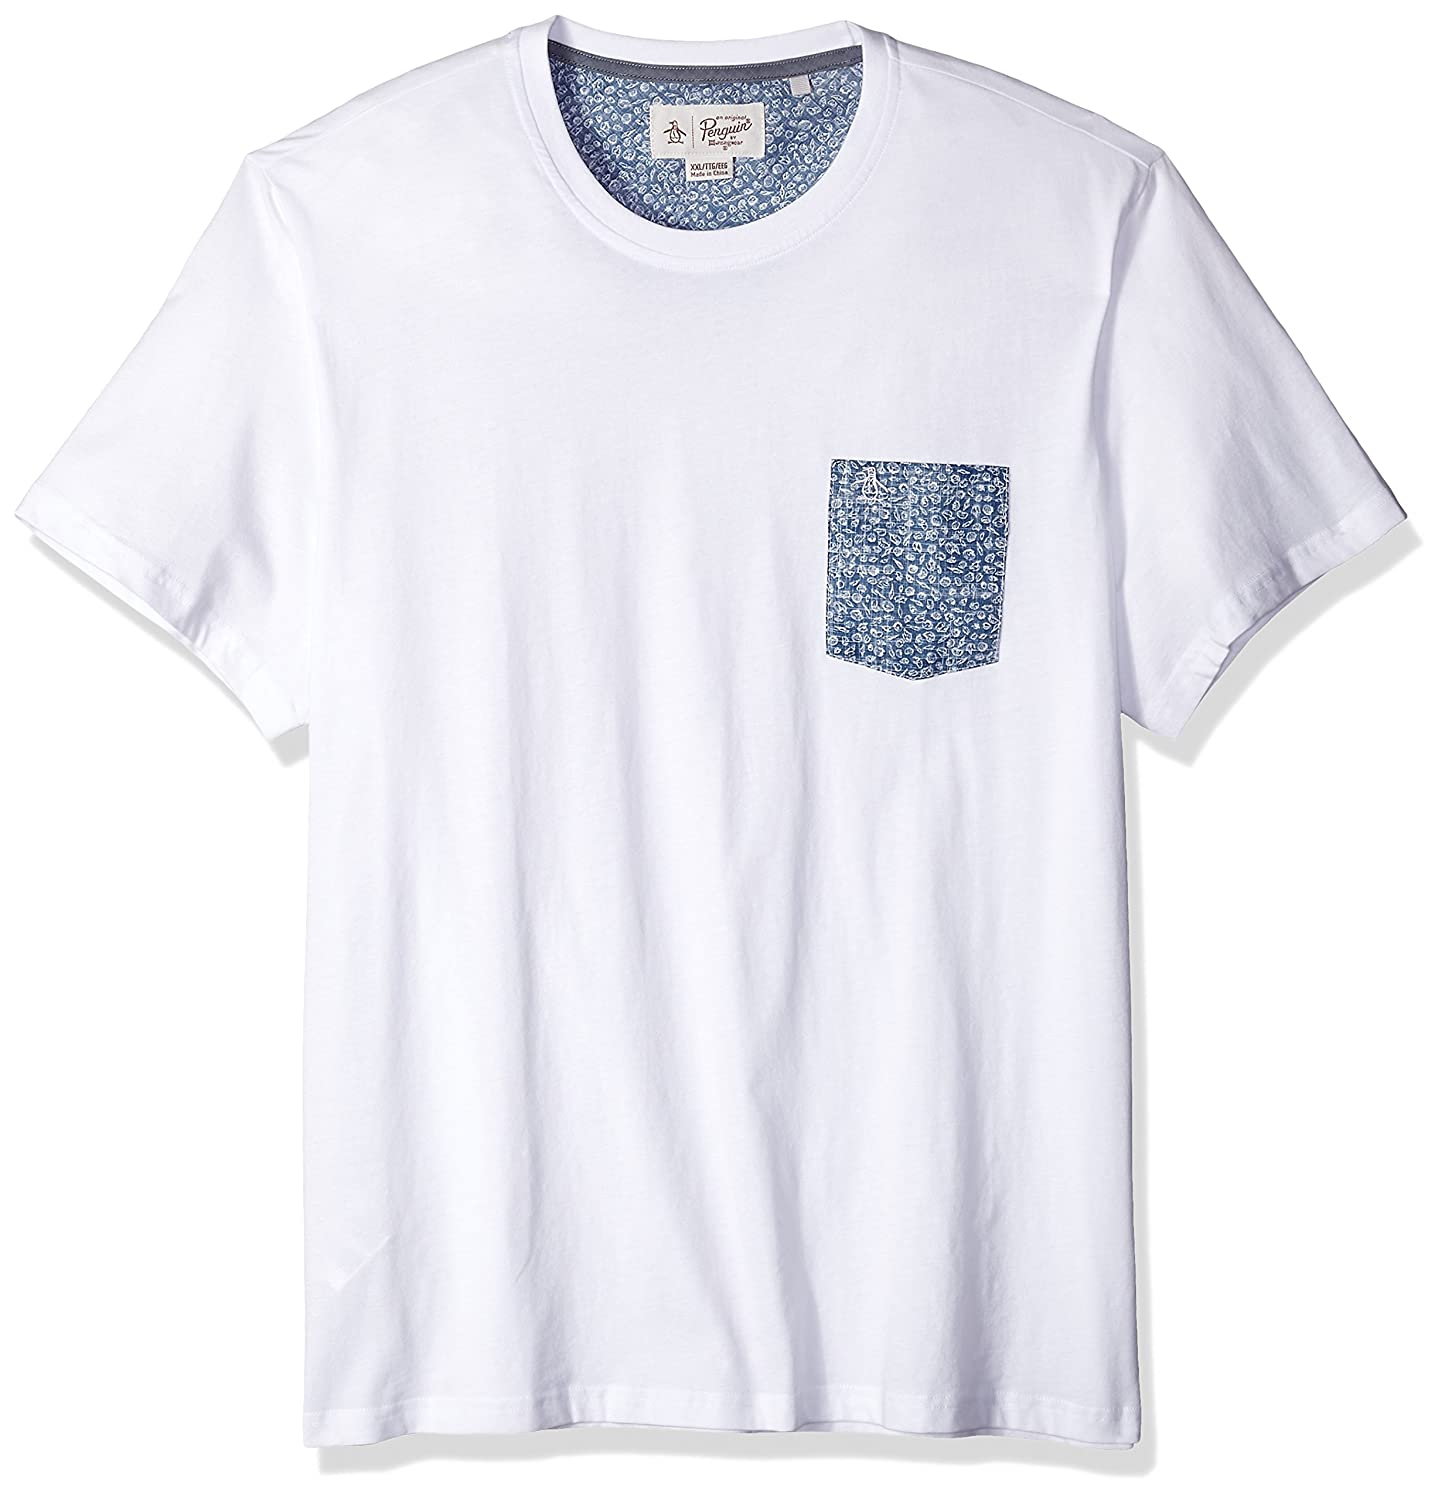 70f4cd37181b 100% Cotton Imported No Closure closure. Machine Wash Original penguin  men s short sleeve t-shirt with crew neck and left chest pocket